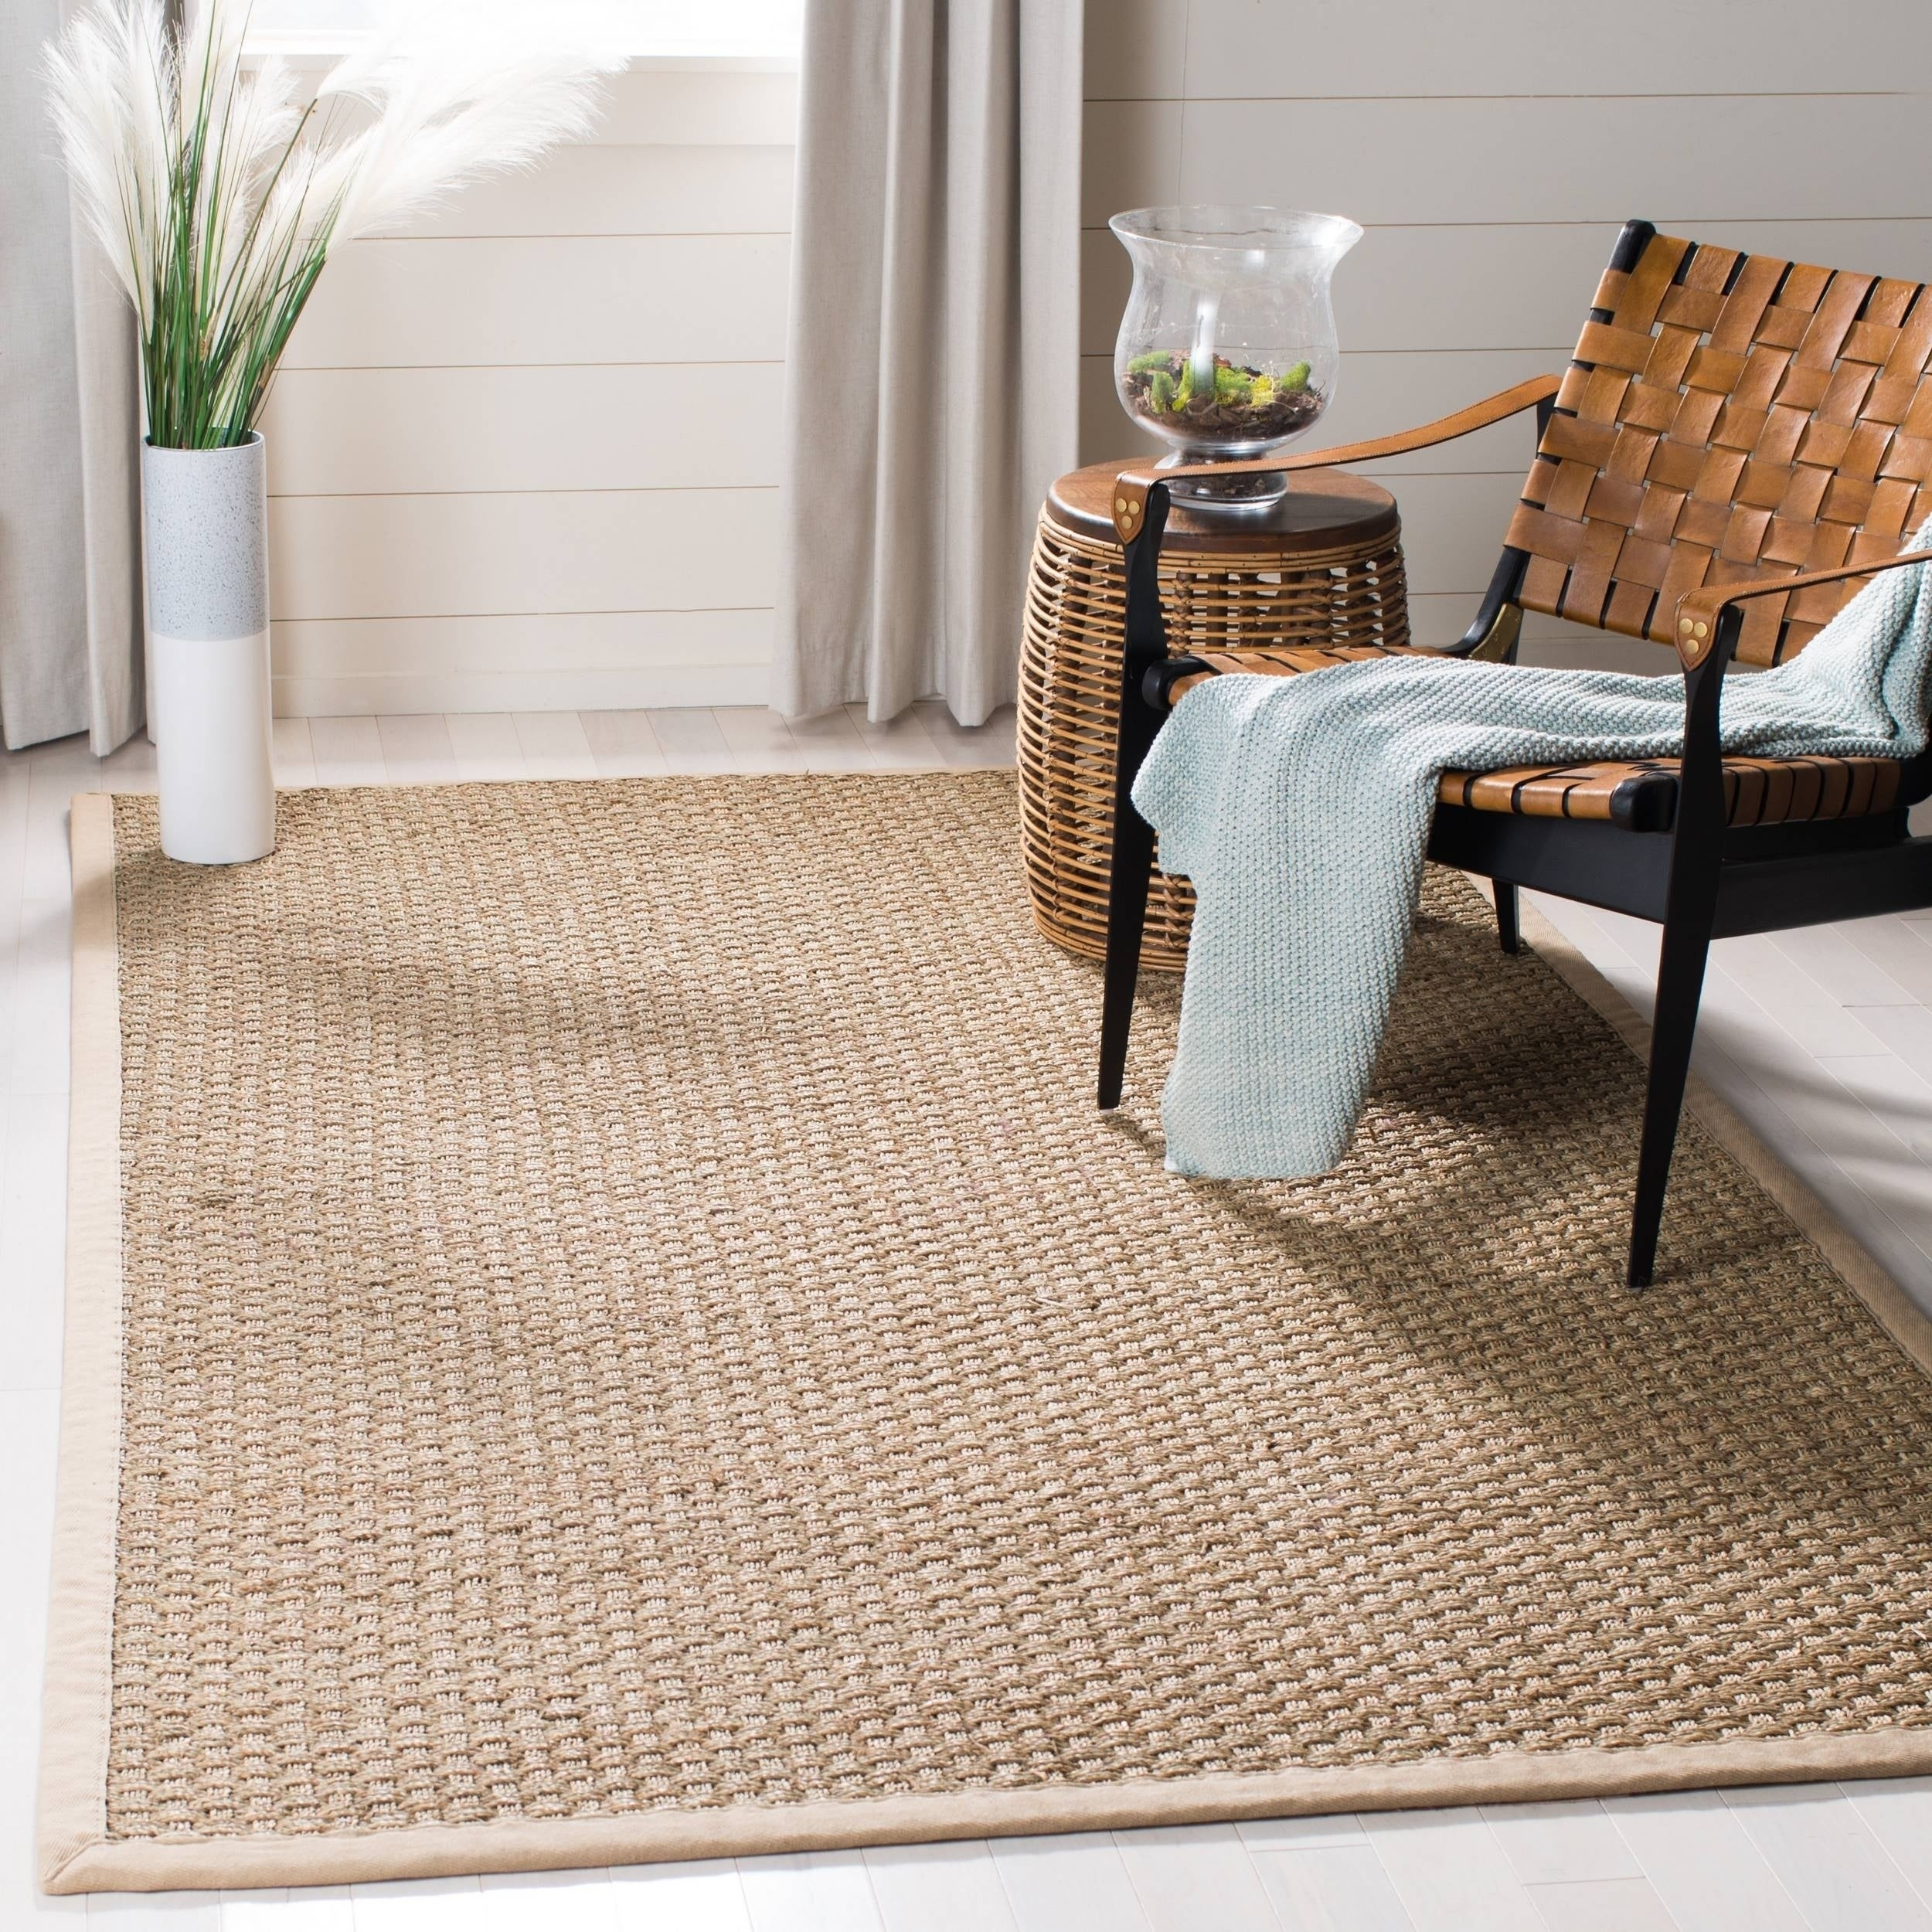 Seagrass Rugs Area Rugs For Less Find Great Home Decor Deals - Seagrass floor squares